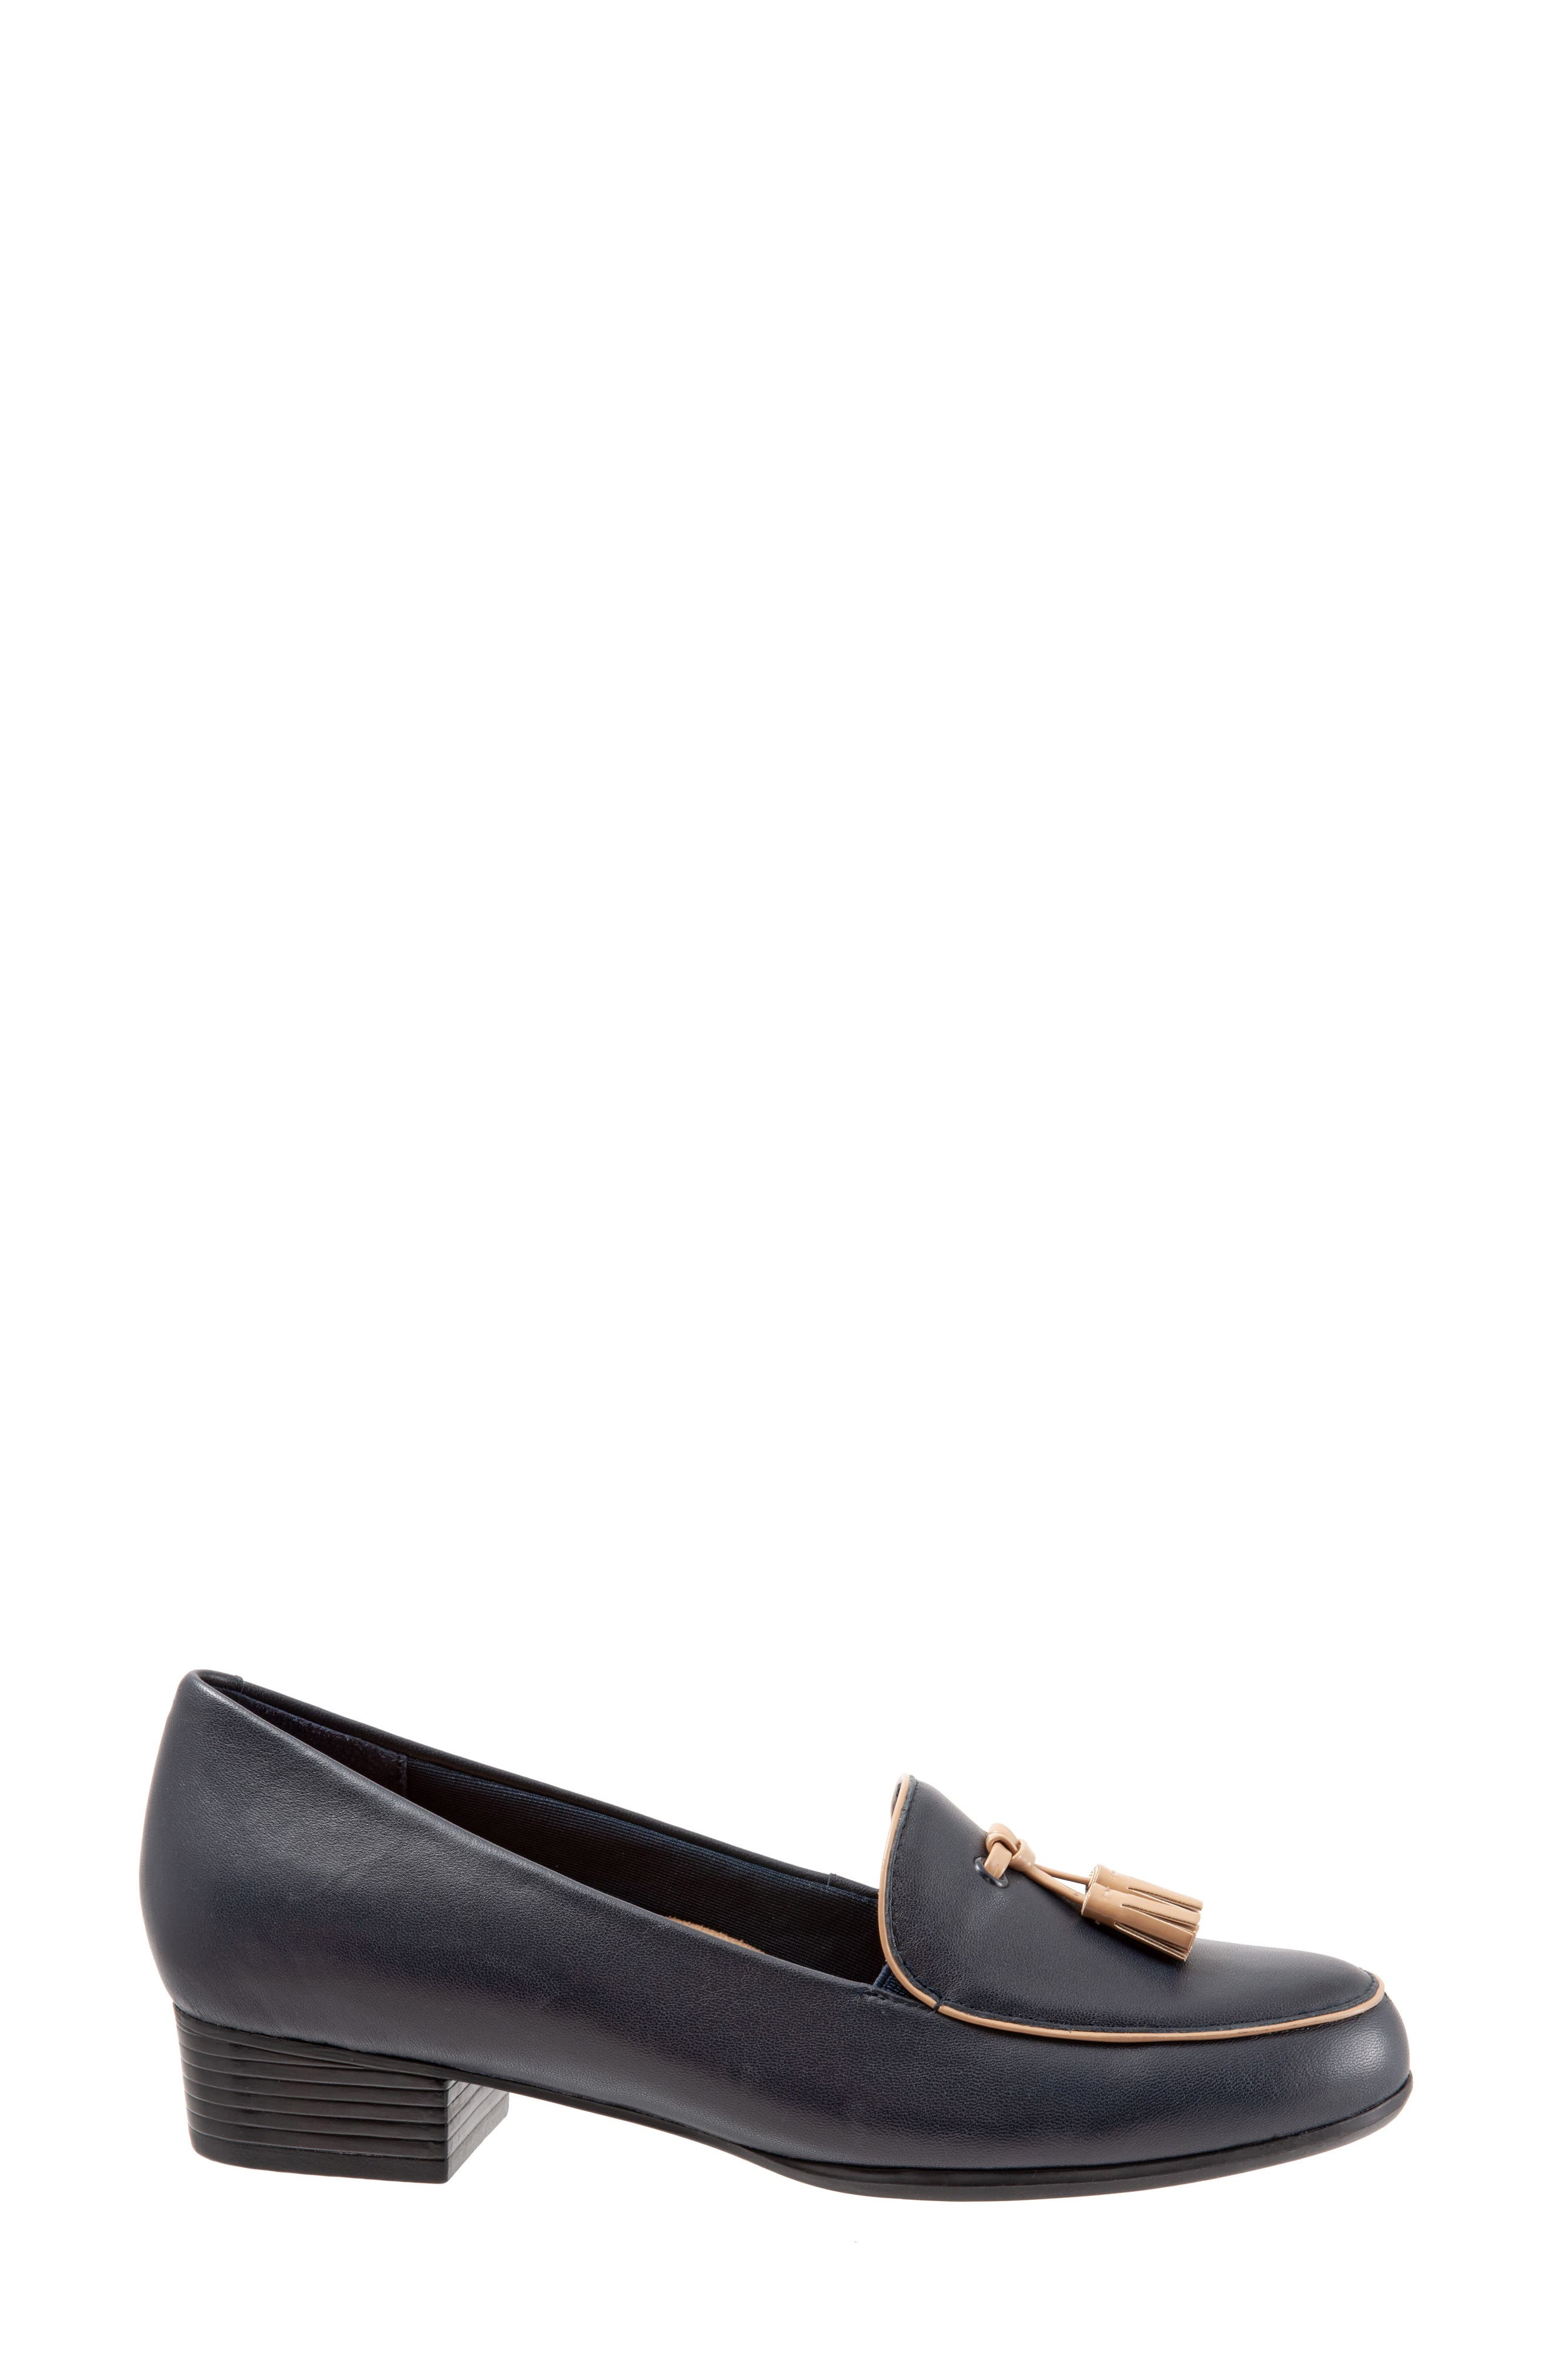 TROTTERS,                             Mary Tassel Loafer,                             Alternate thumbnail 3, color,                             NAVY LEATHER